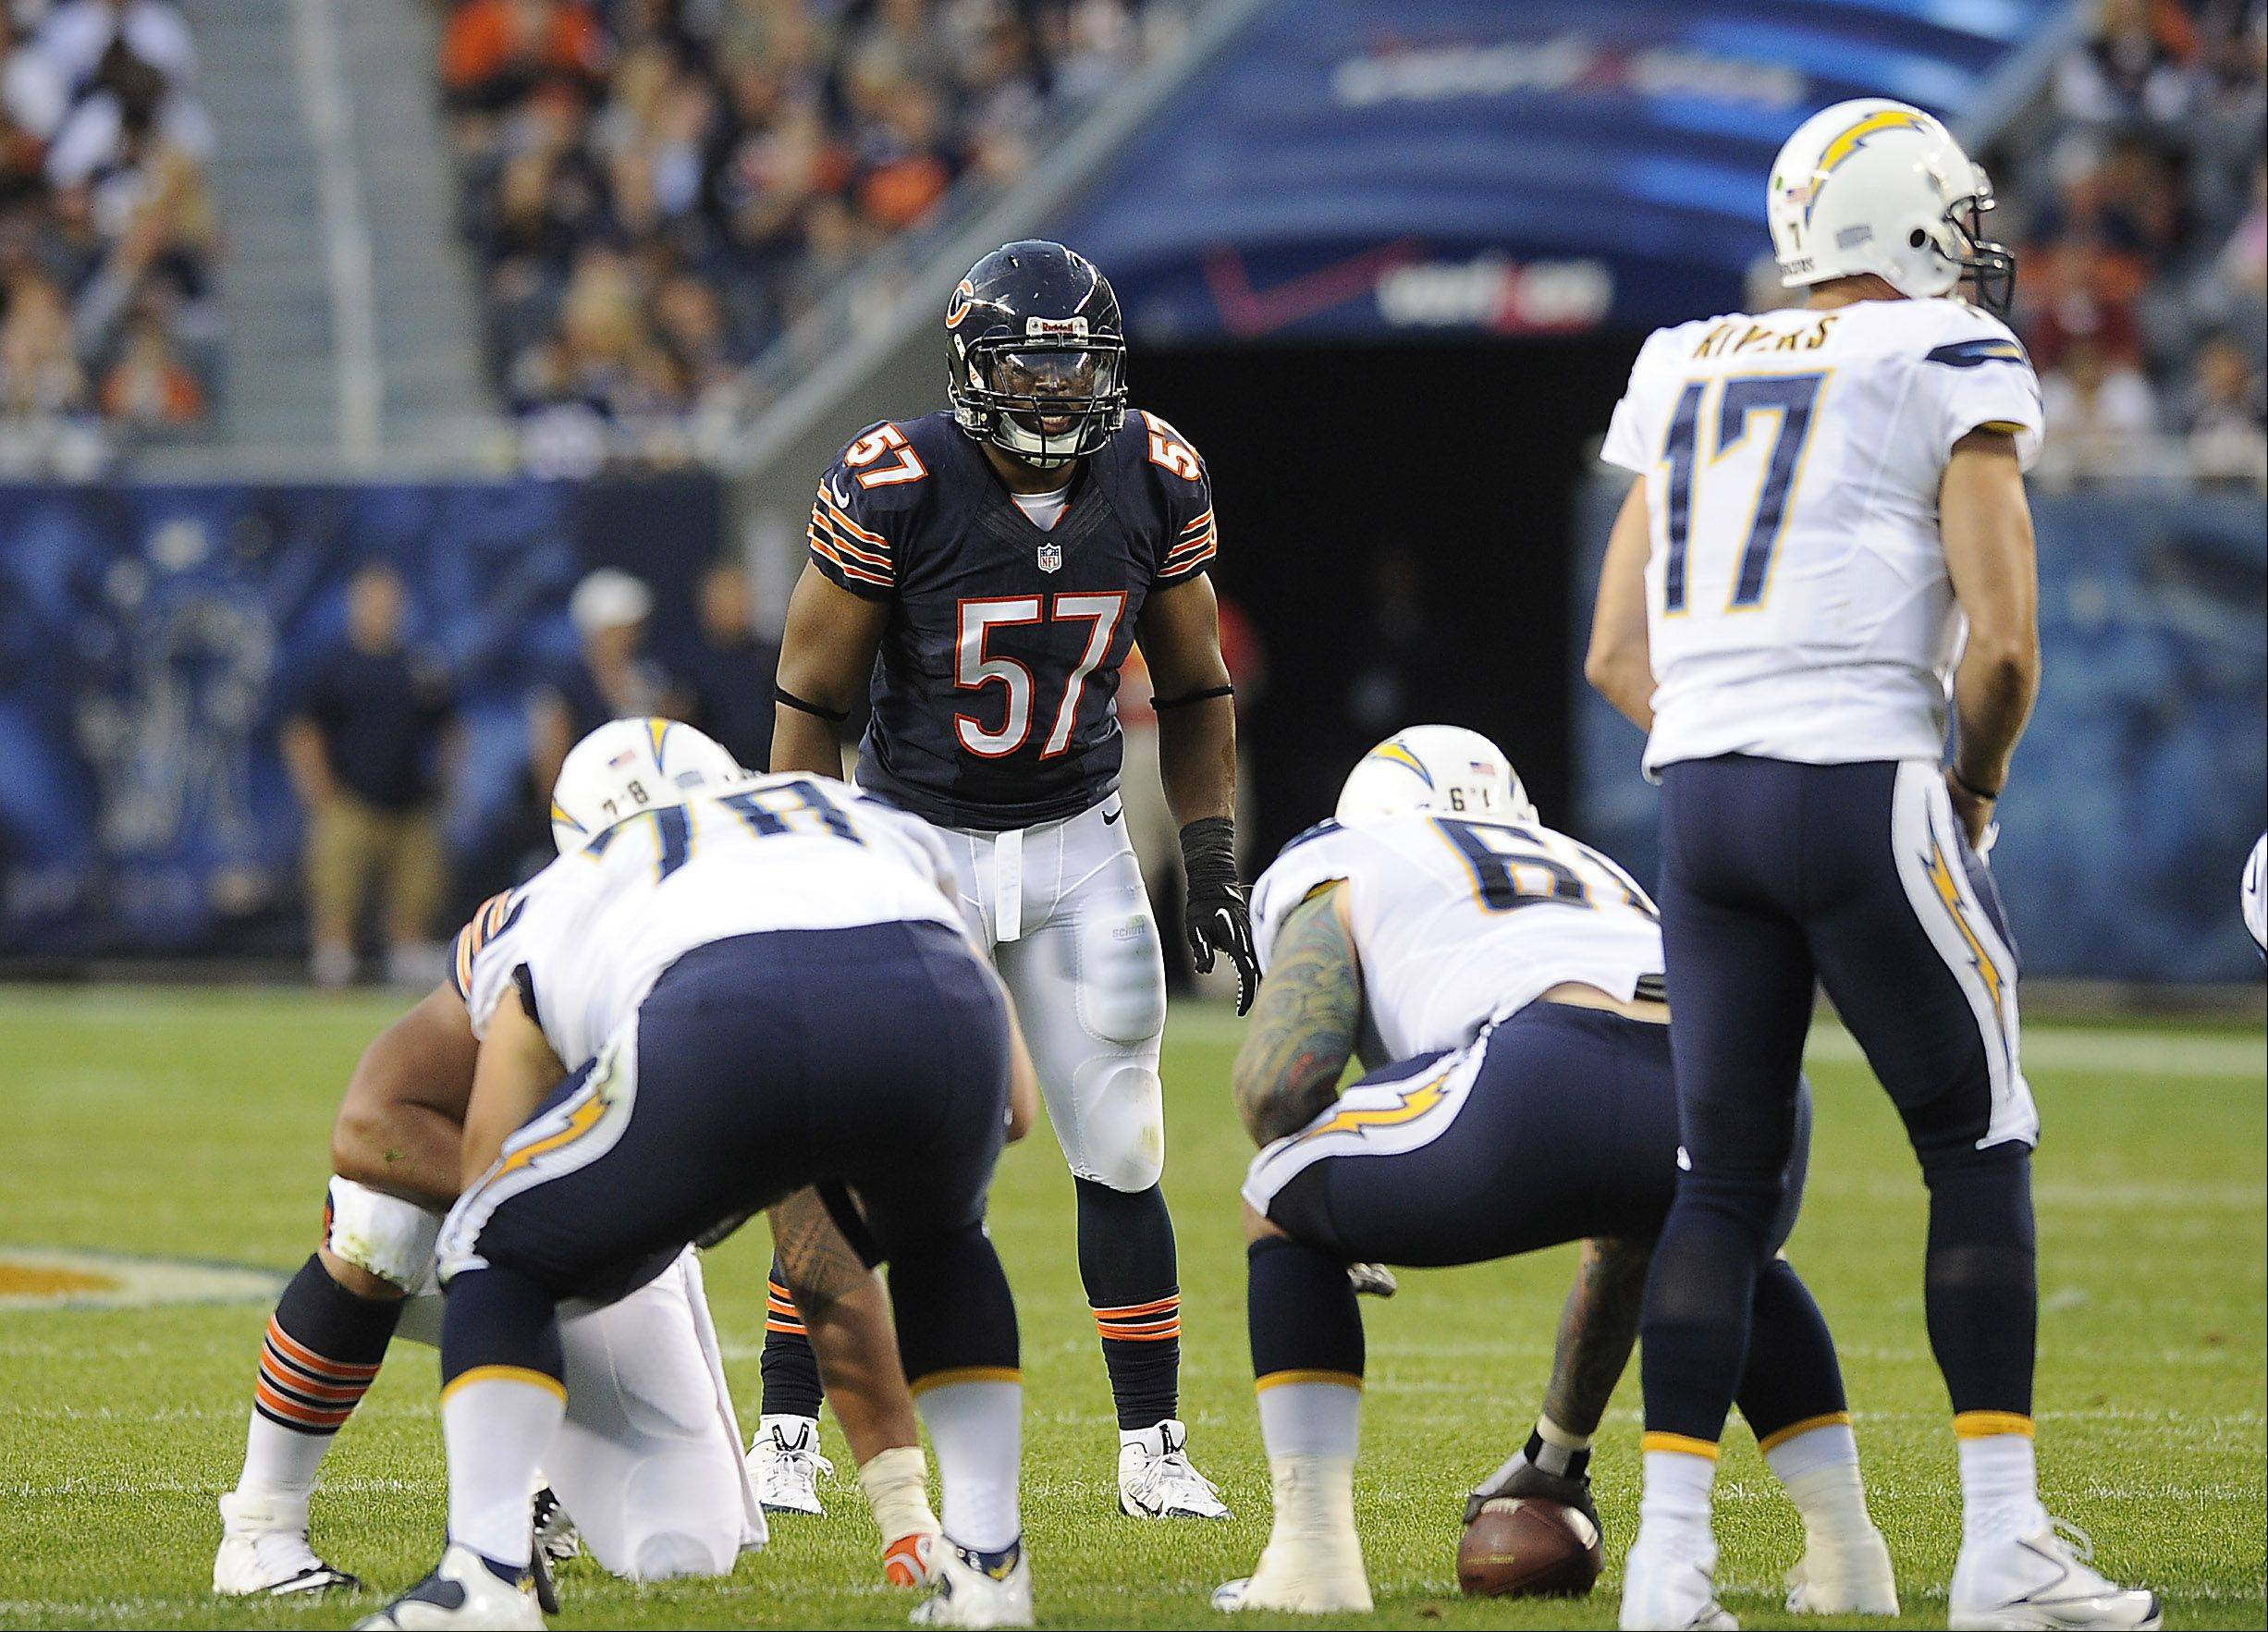 Chicago Bears rookie linebacker Jon Bostic (57) delivered some big hits against the San Diego Chargers in last week's preseason game at Soldier Field.